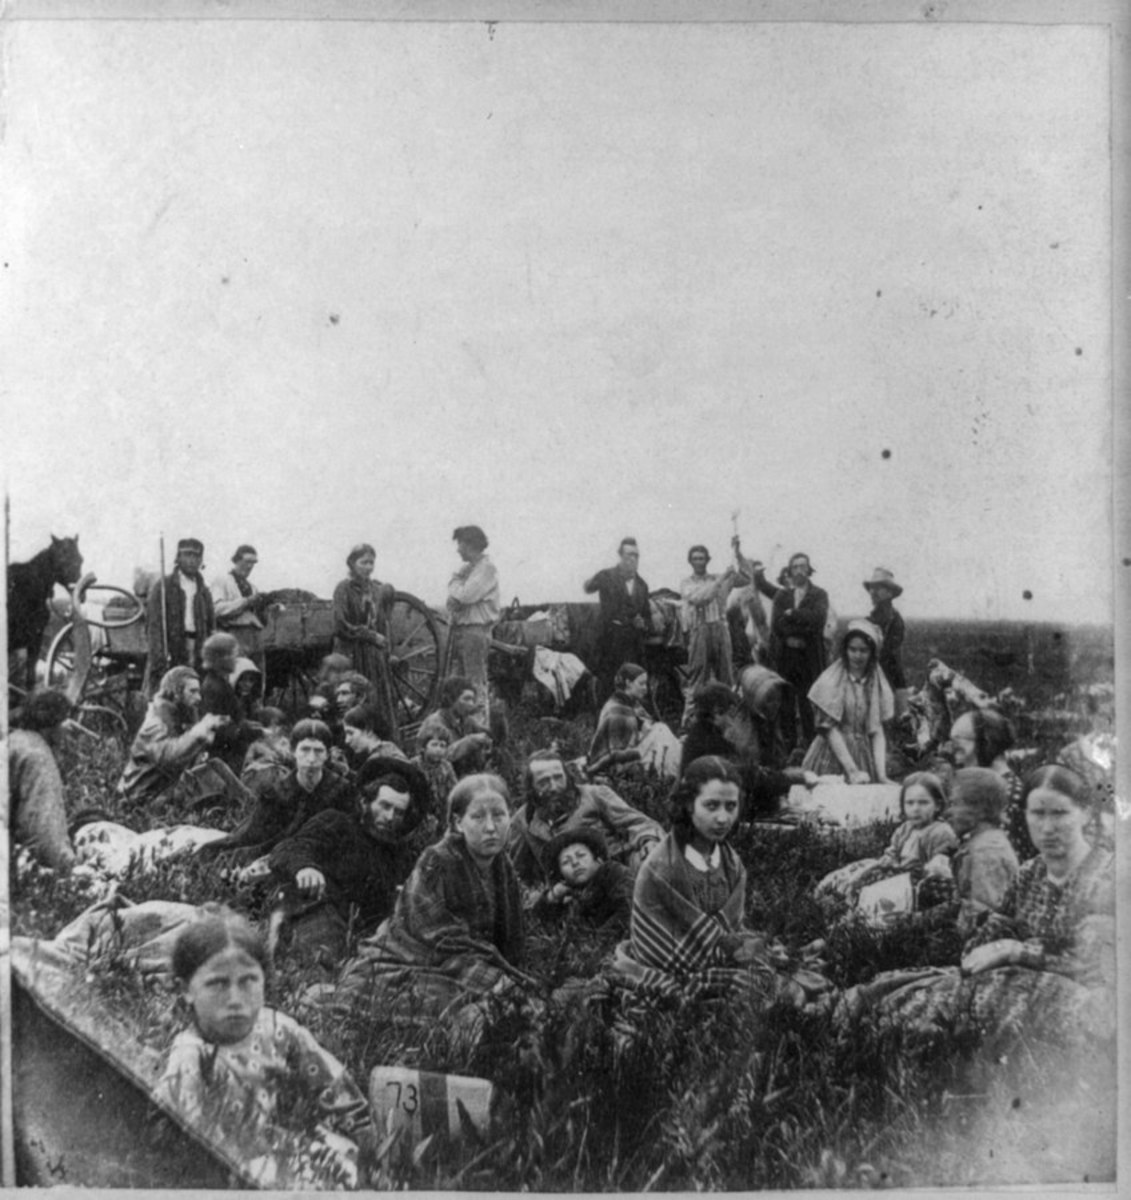 White refugees fleeing the violence of the Sioux Uprising.